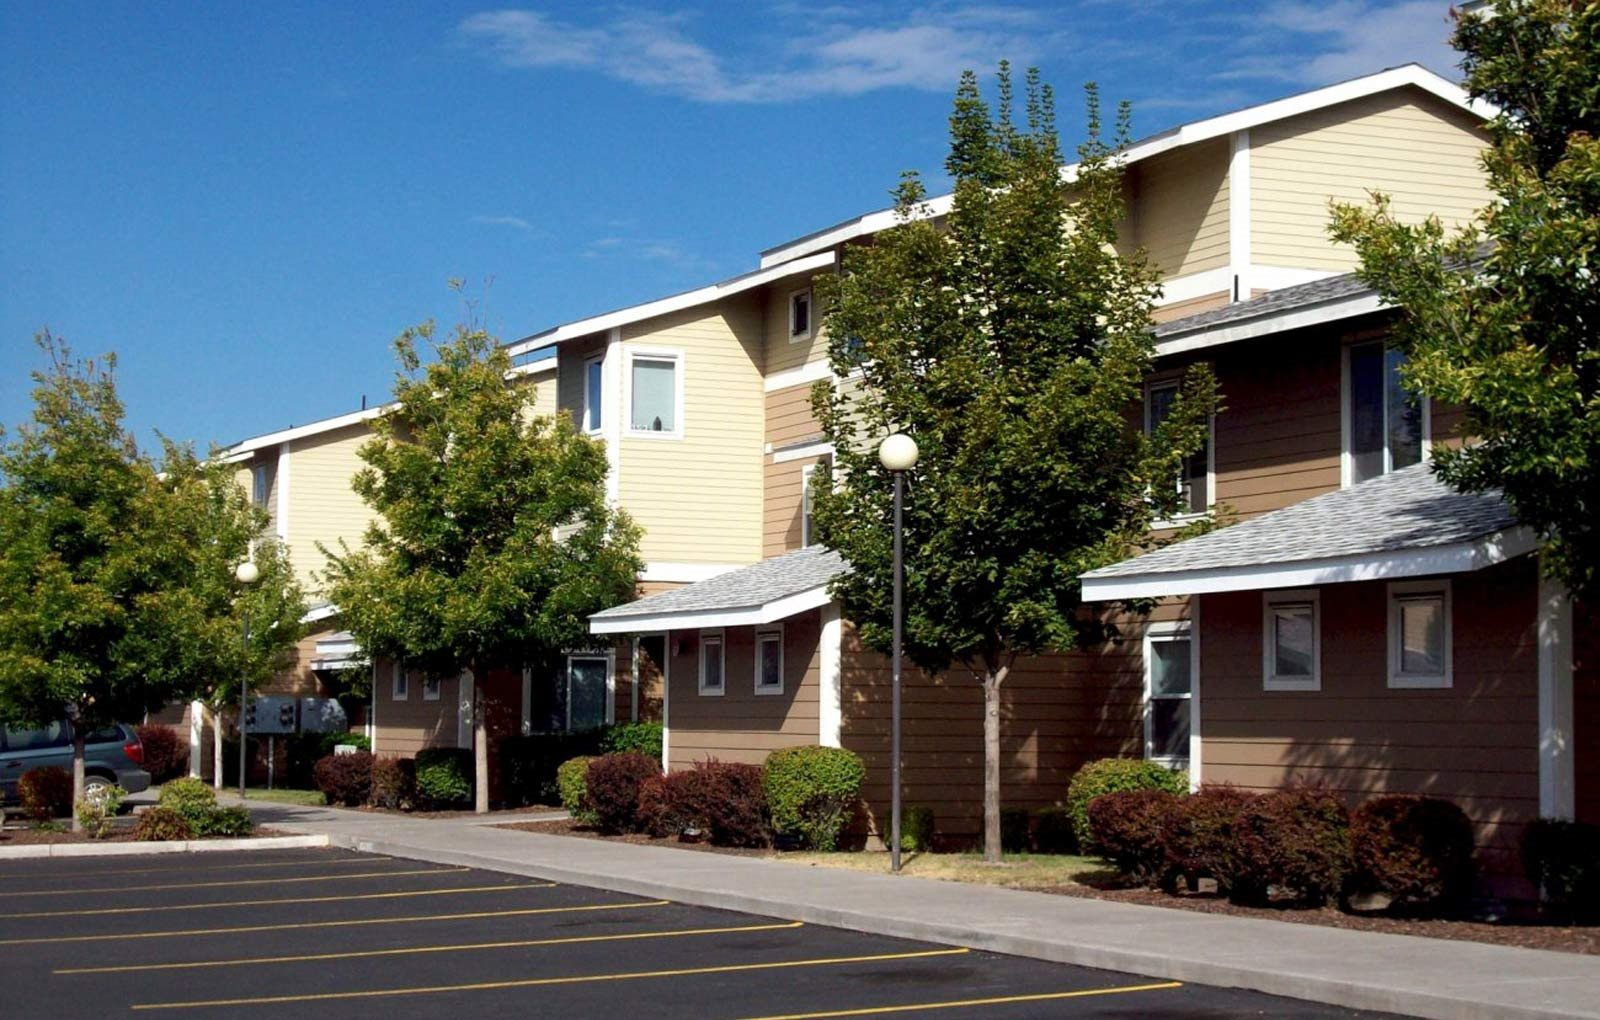 Exterior Building l Crestview Commons Apartments in Klamath Falls OR